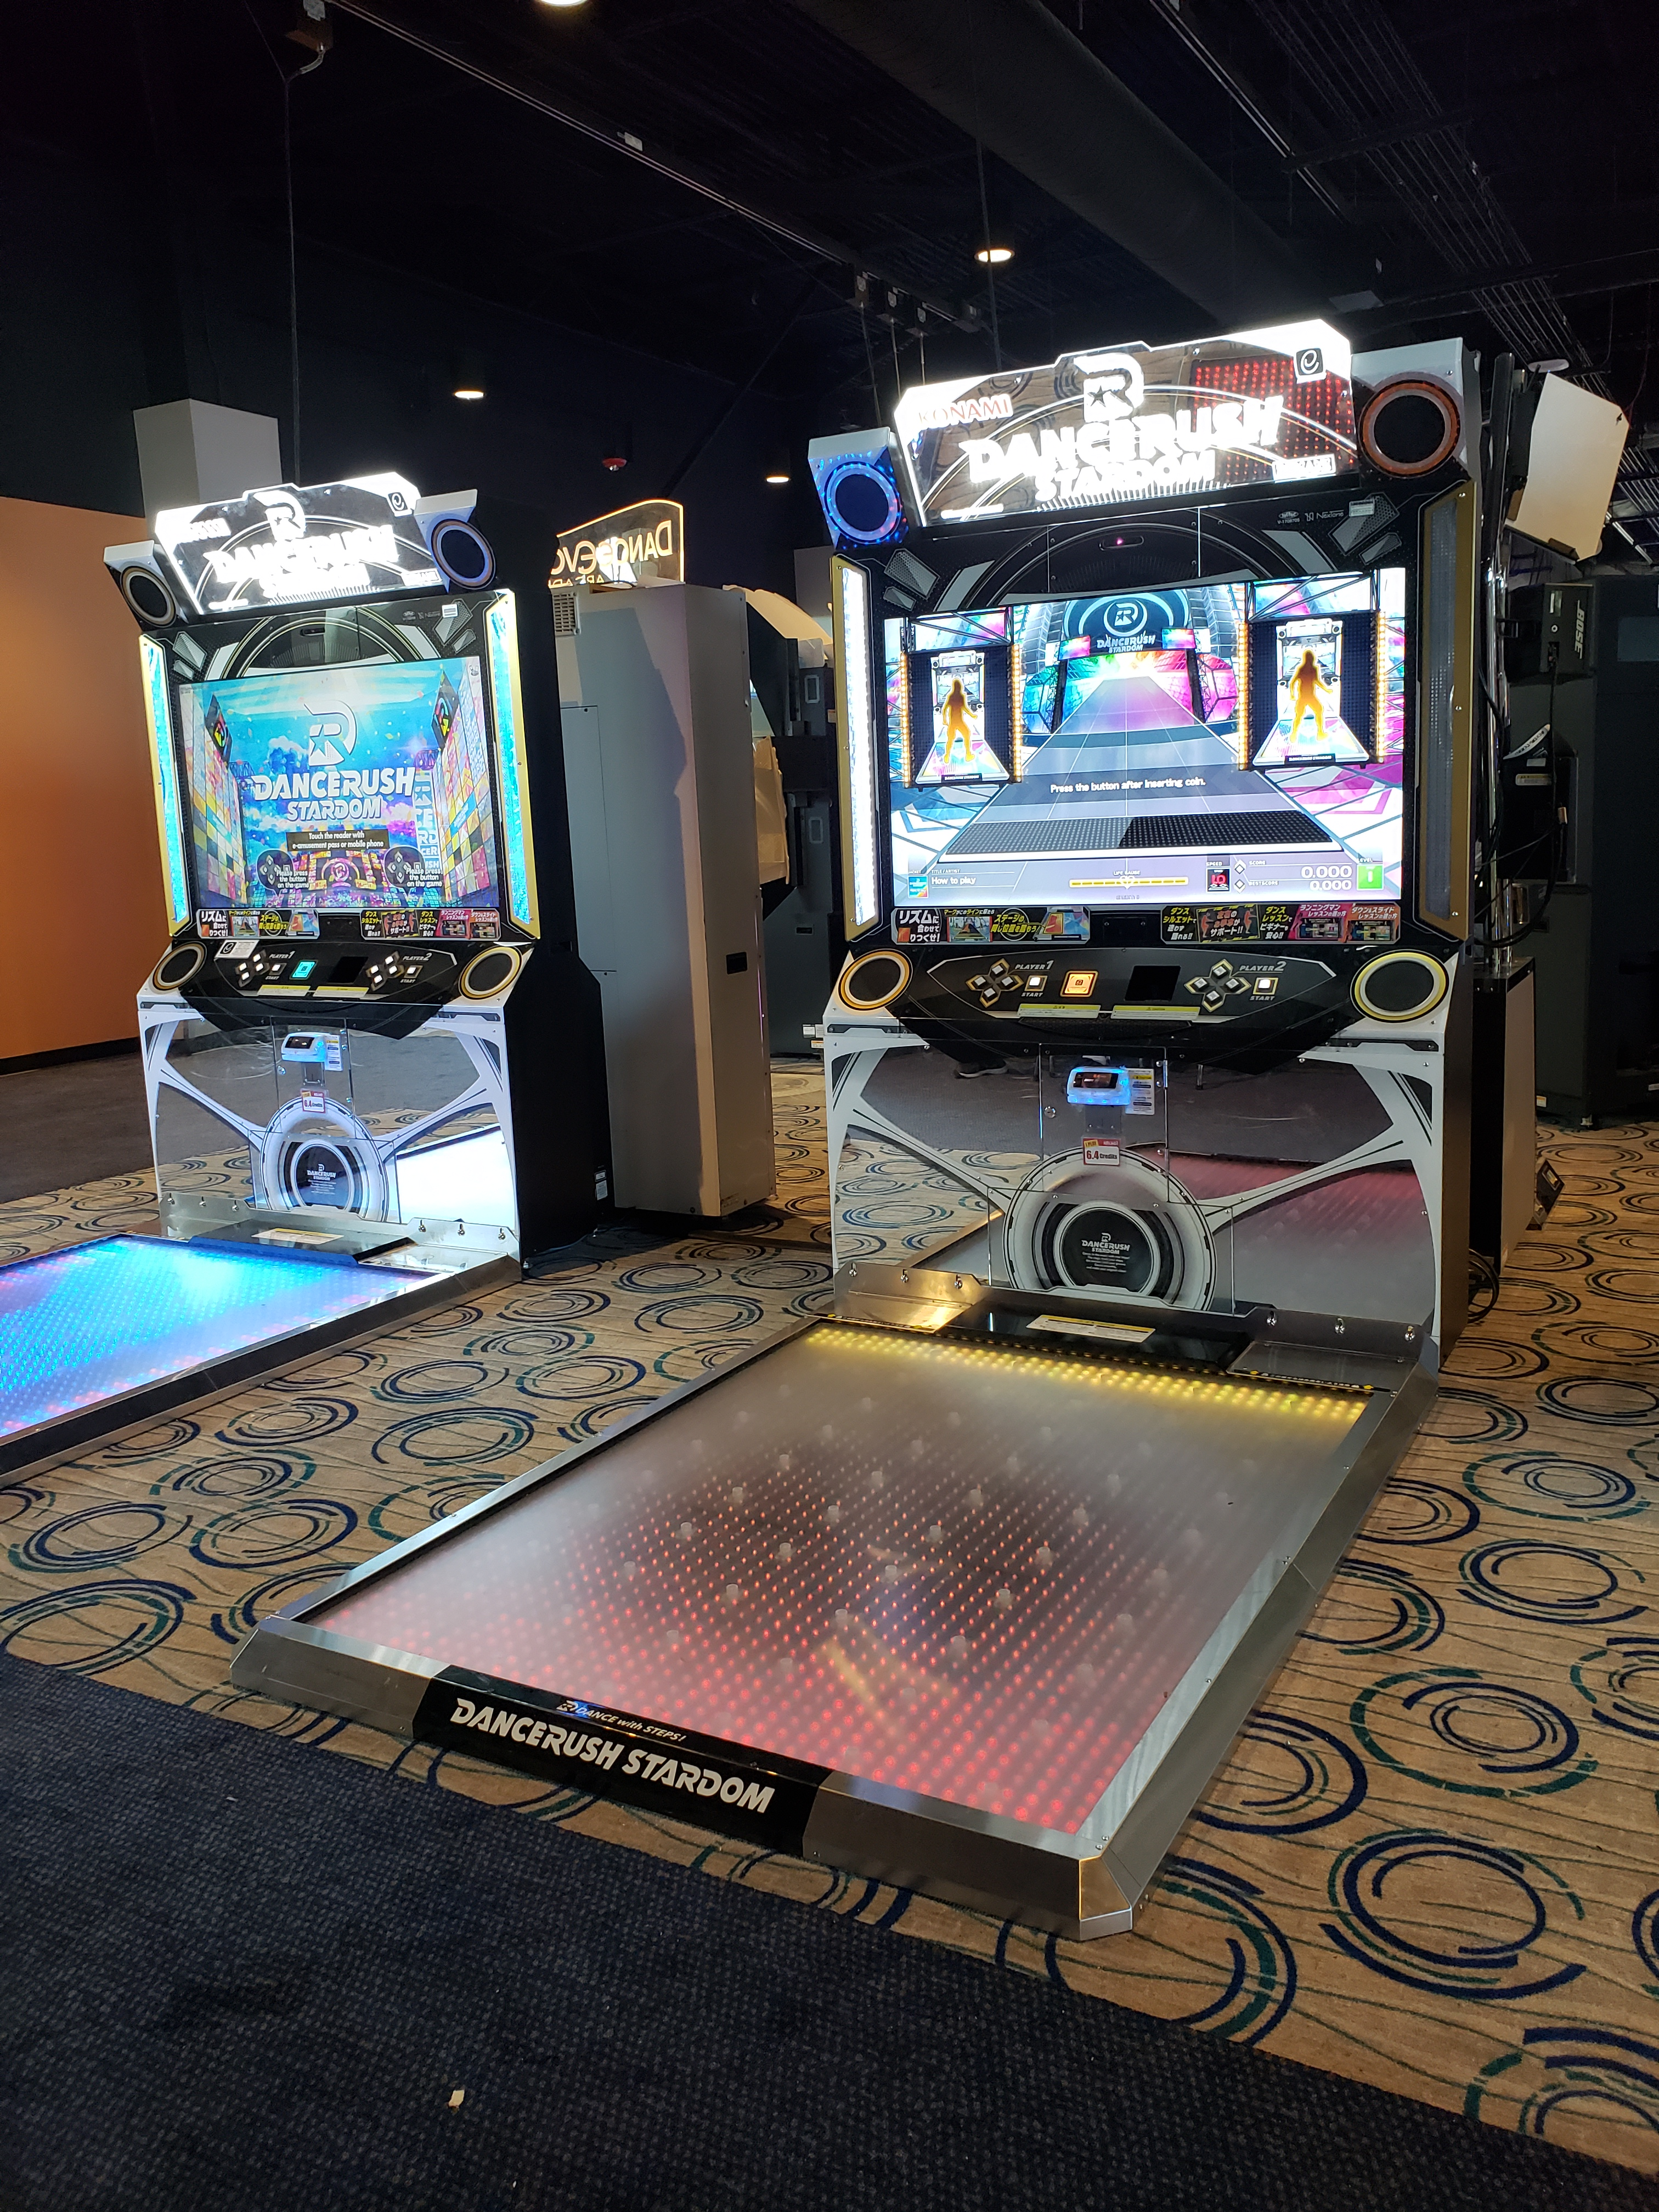 2 Dance Rush Stardom machines